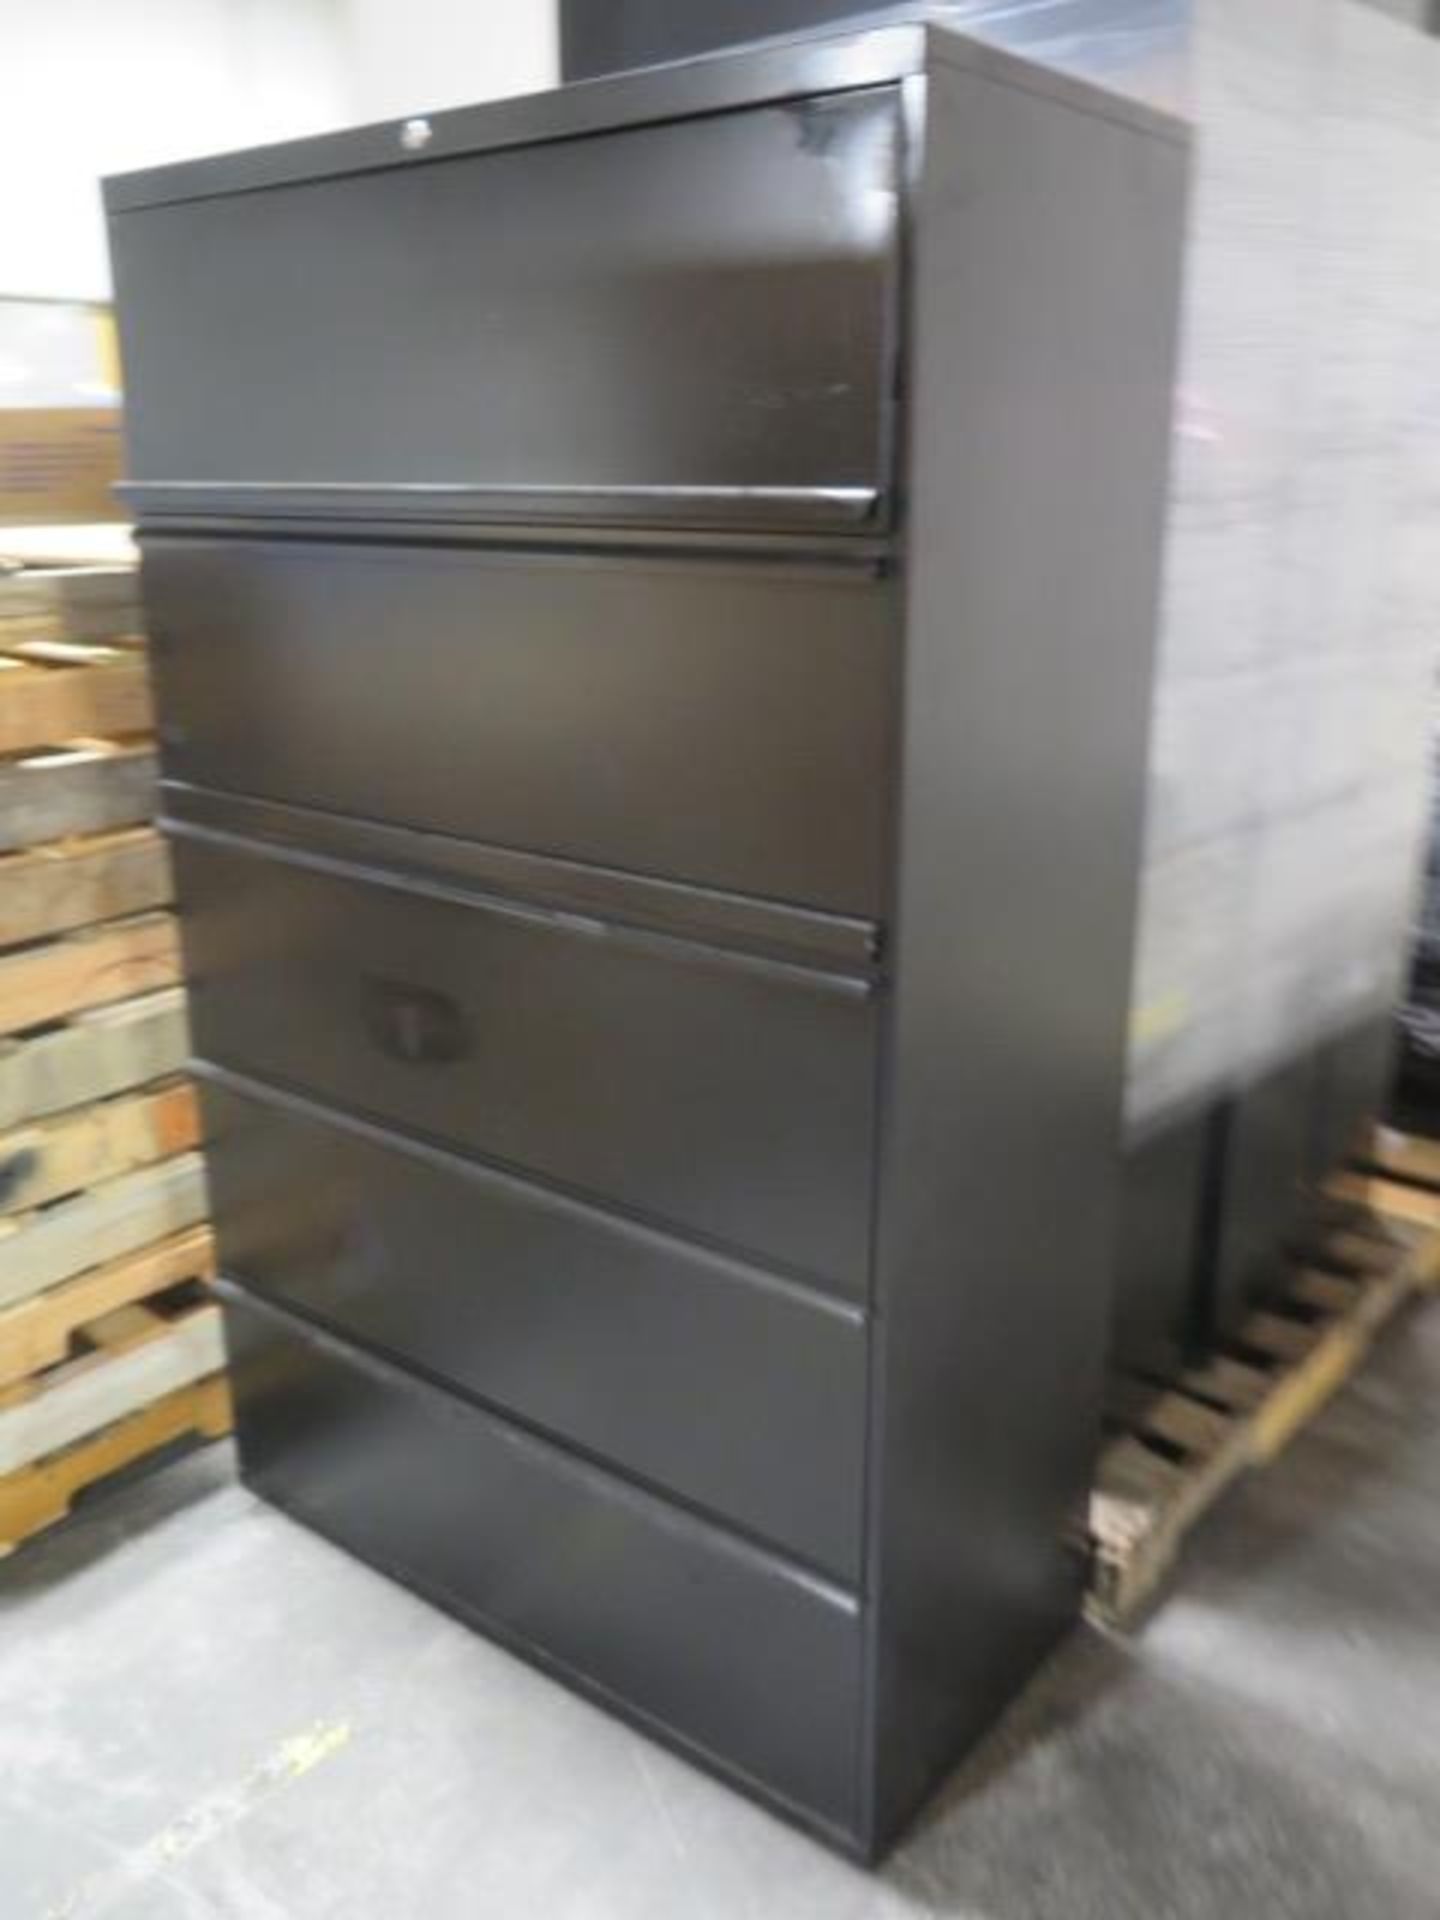 Large Quantity of Office Partitions, Desks, File Cabinets and Storage Cabinets (SOLD AS-IS - NO WARA - Image 13 of 24